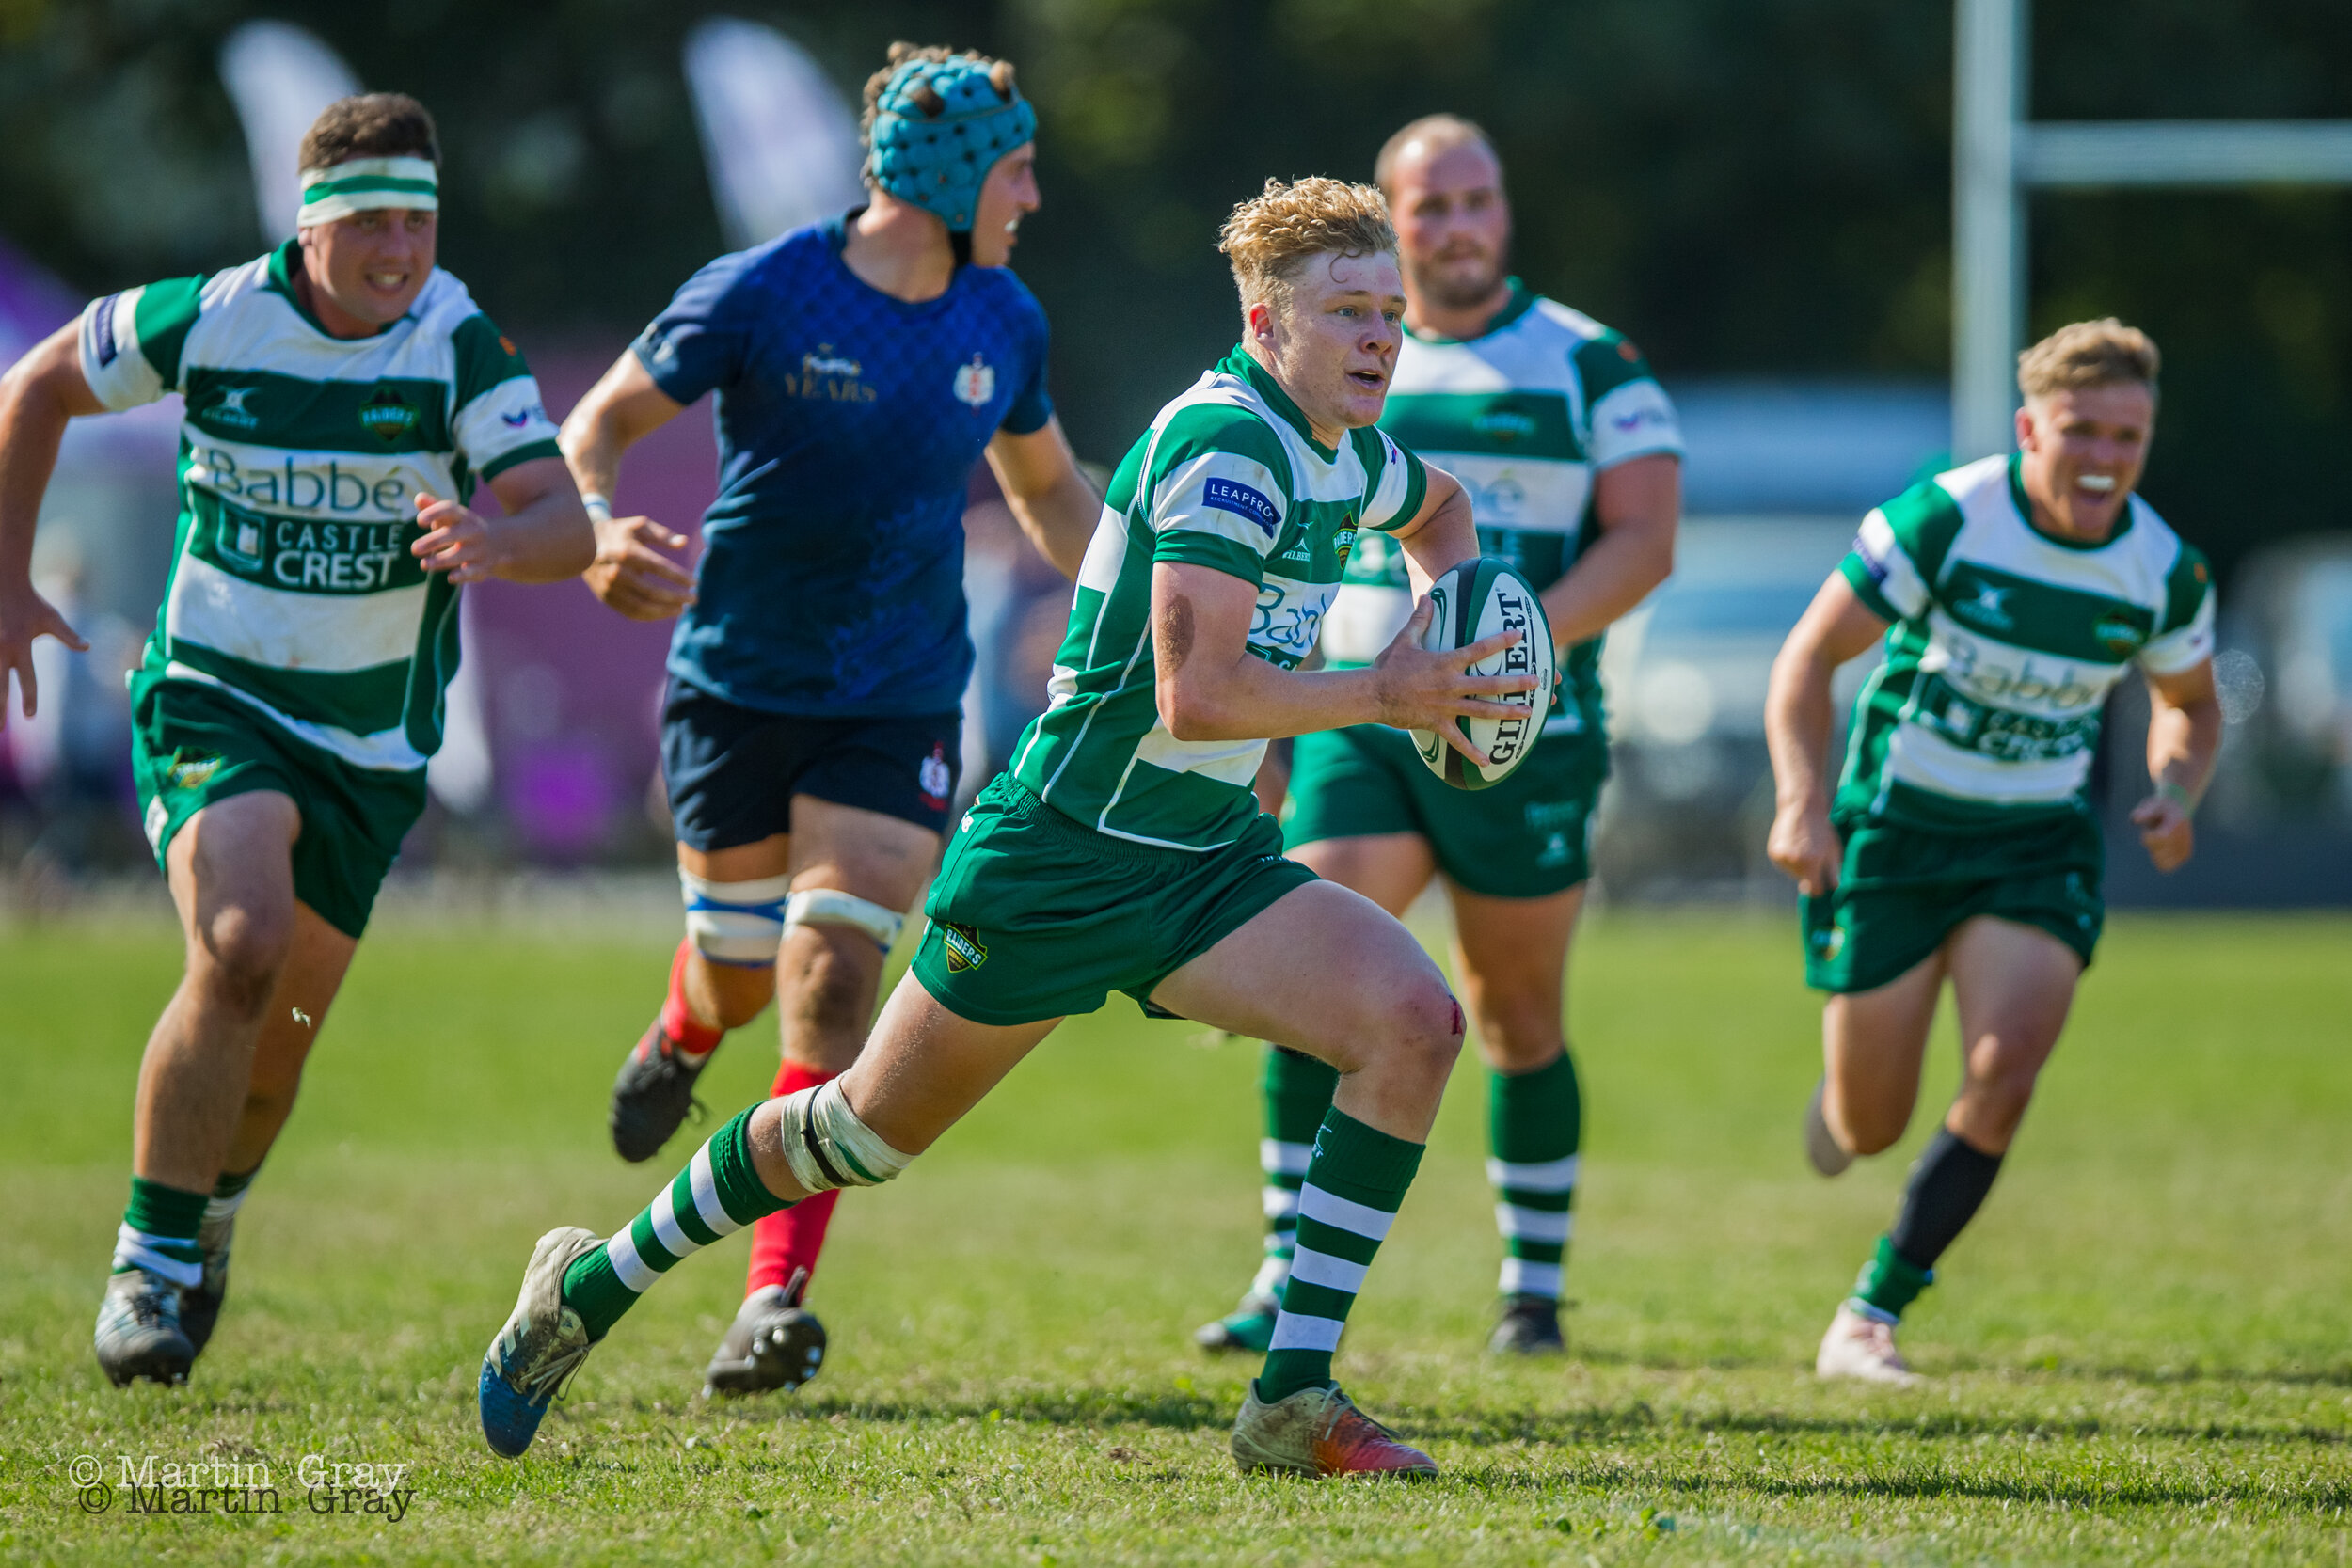 Guernsey Raiders v Brighton RFC in London & SE Premier action on the club pitch at Footes Lane… Raiders win 22-7